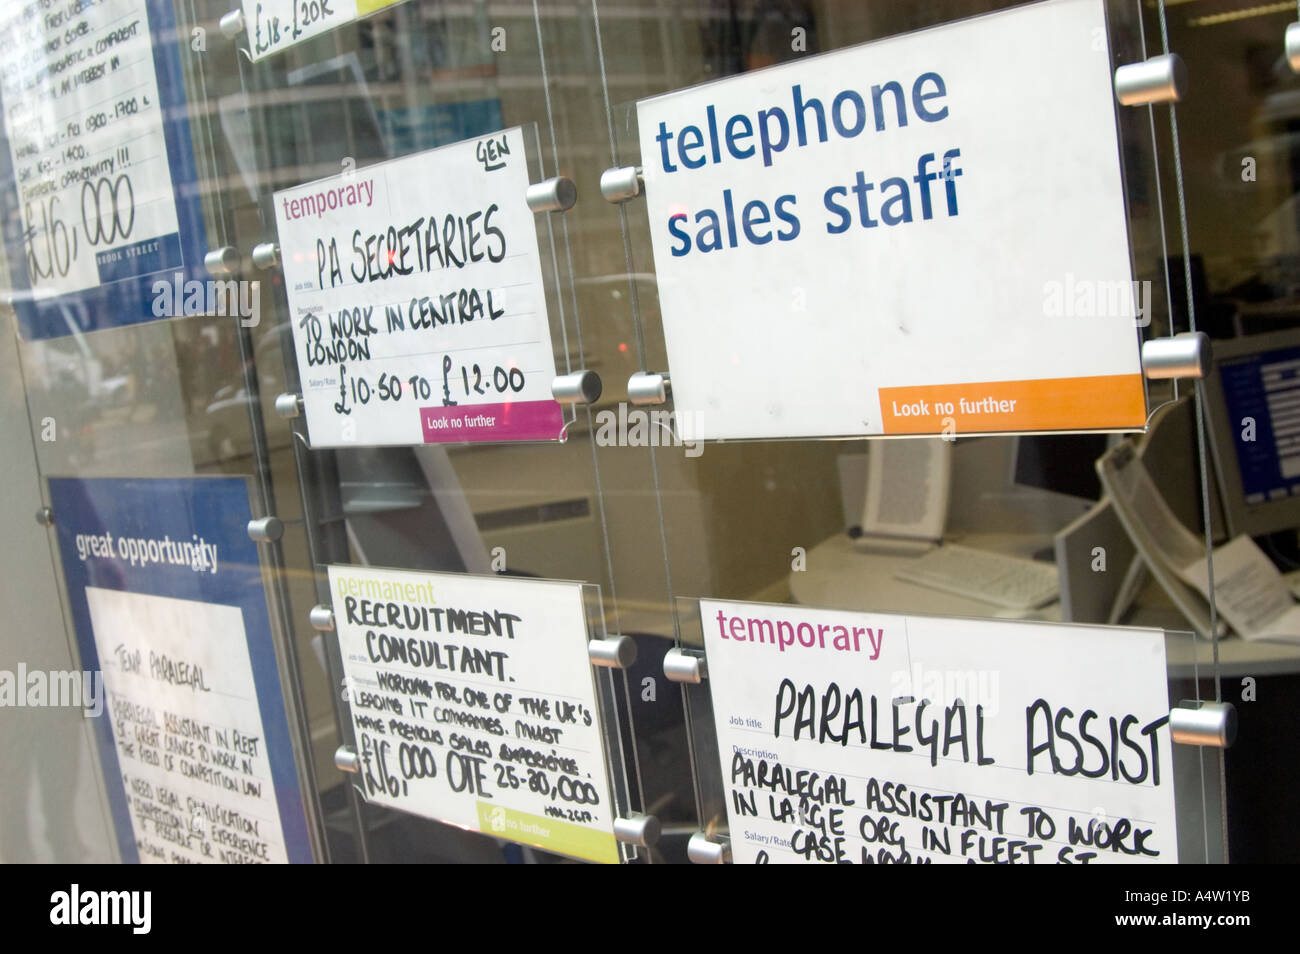 Ad agency stock photos ad agency stock images alamy telephone sales staff job ad in window of office recruitment agency london england malvernweather Gallery